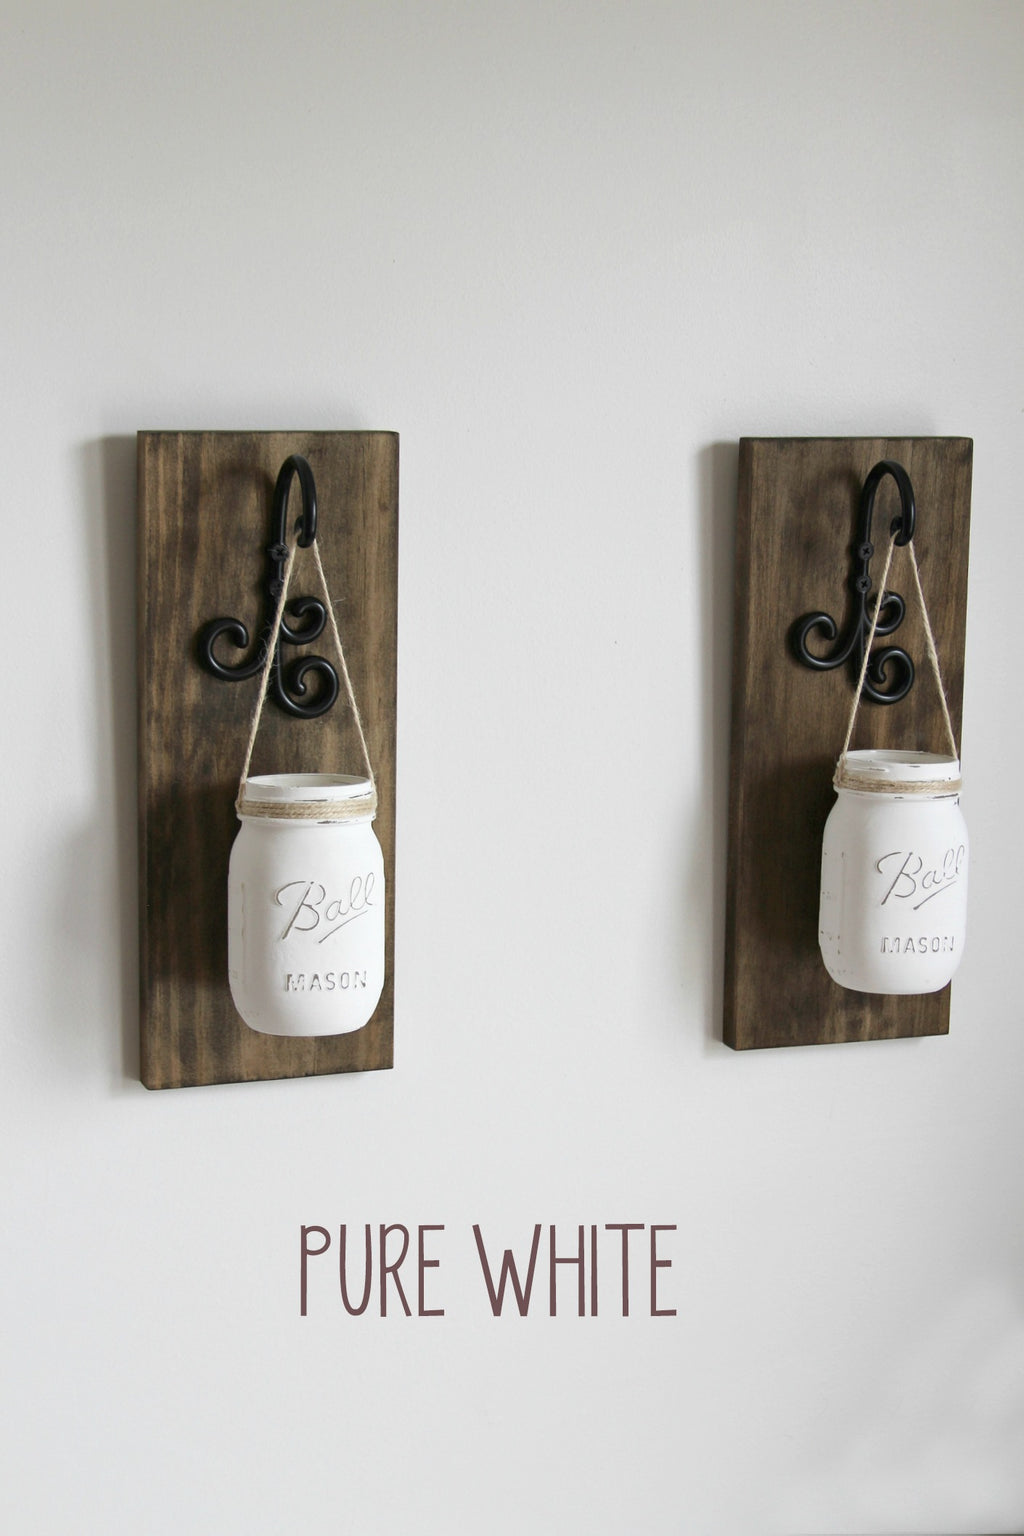 Hanging Painted Mason Jar Wall Sconces |  Rustic Wall Decor - Jarful House